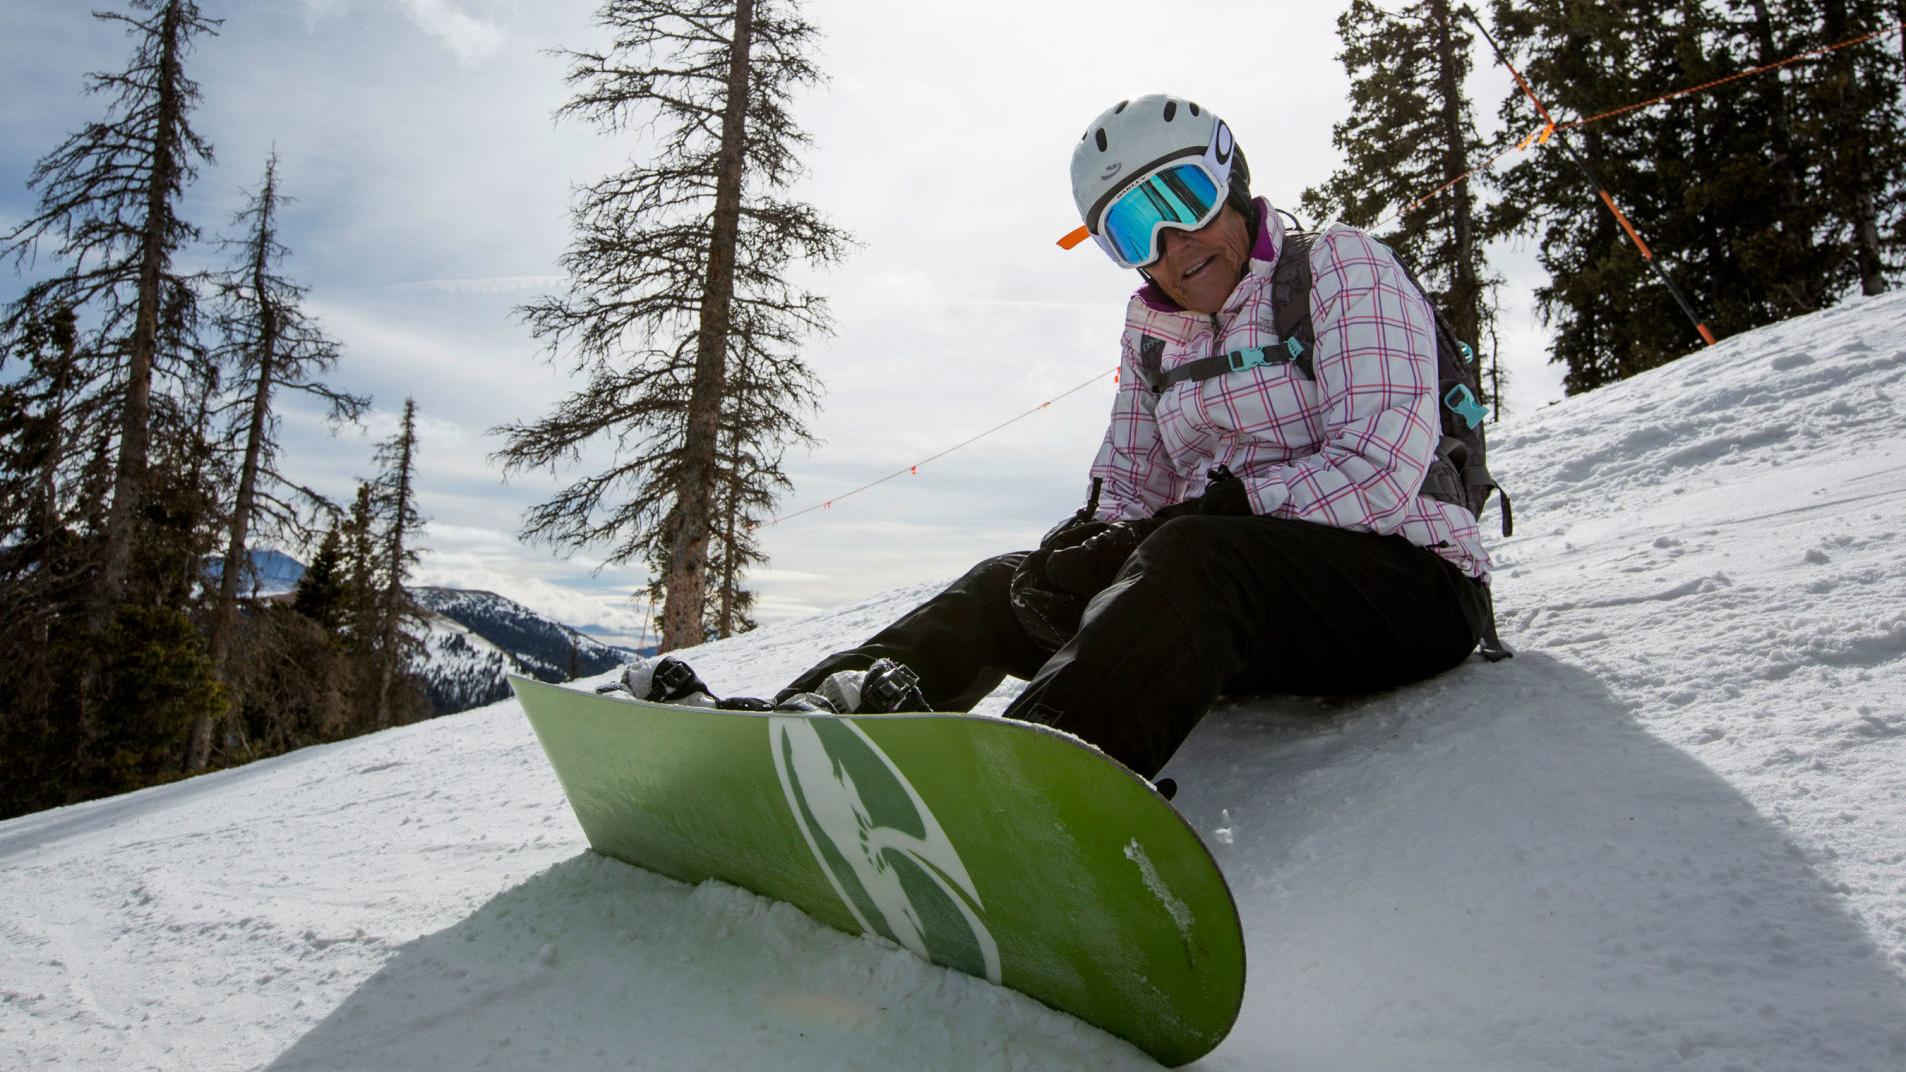 At 81, Colorado woman defies odds on snowboard